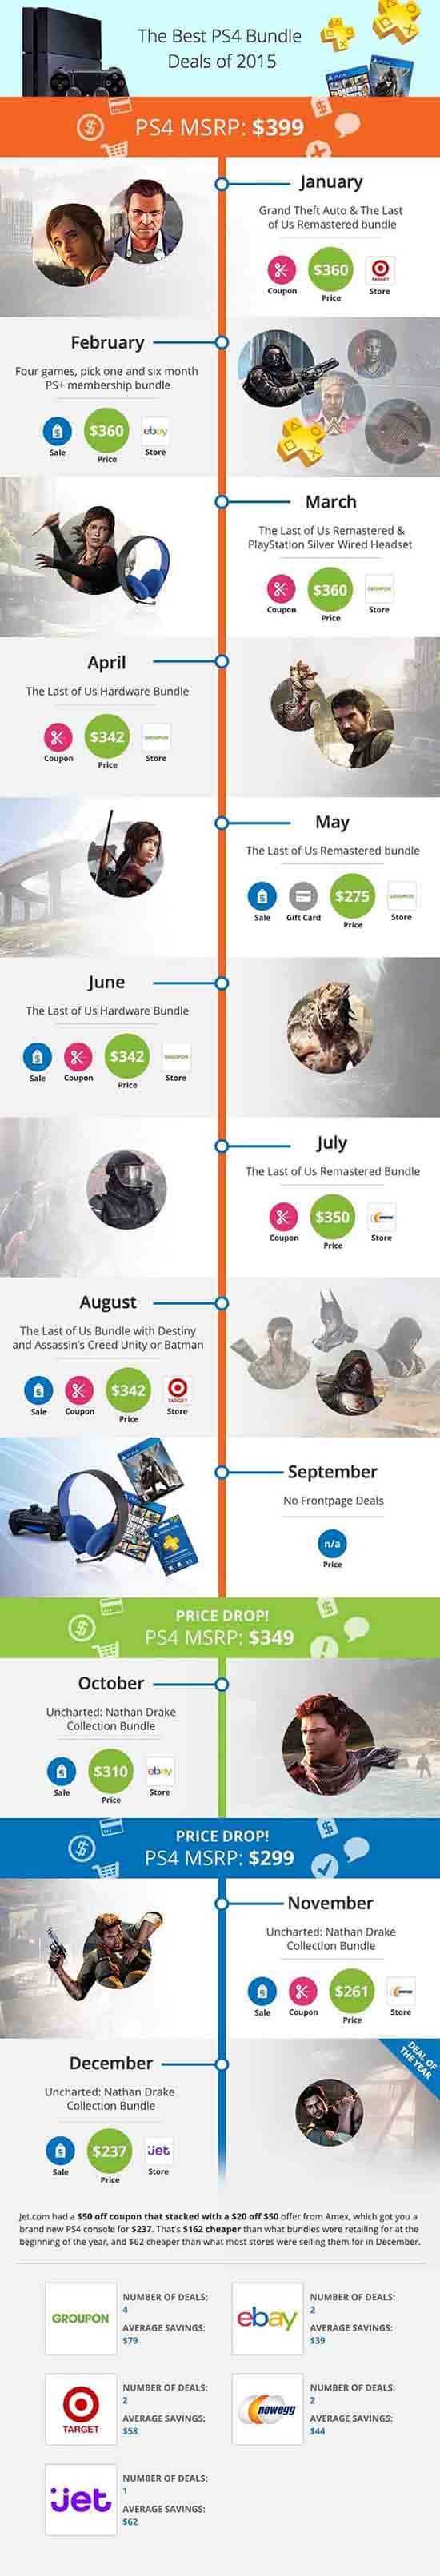 PS4 price 2015